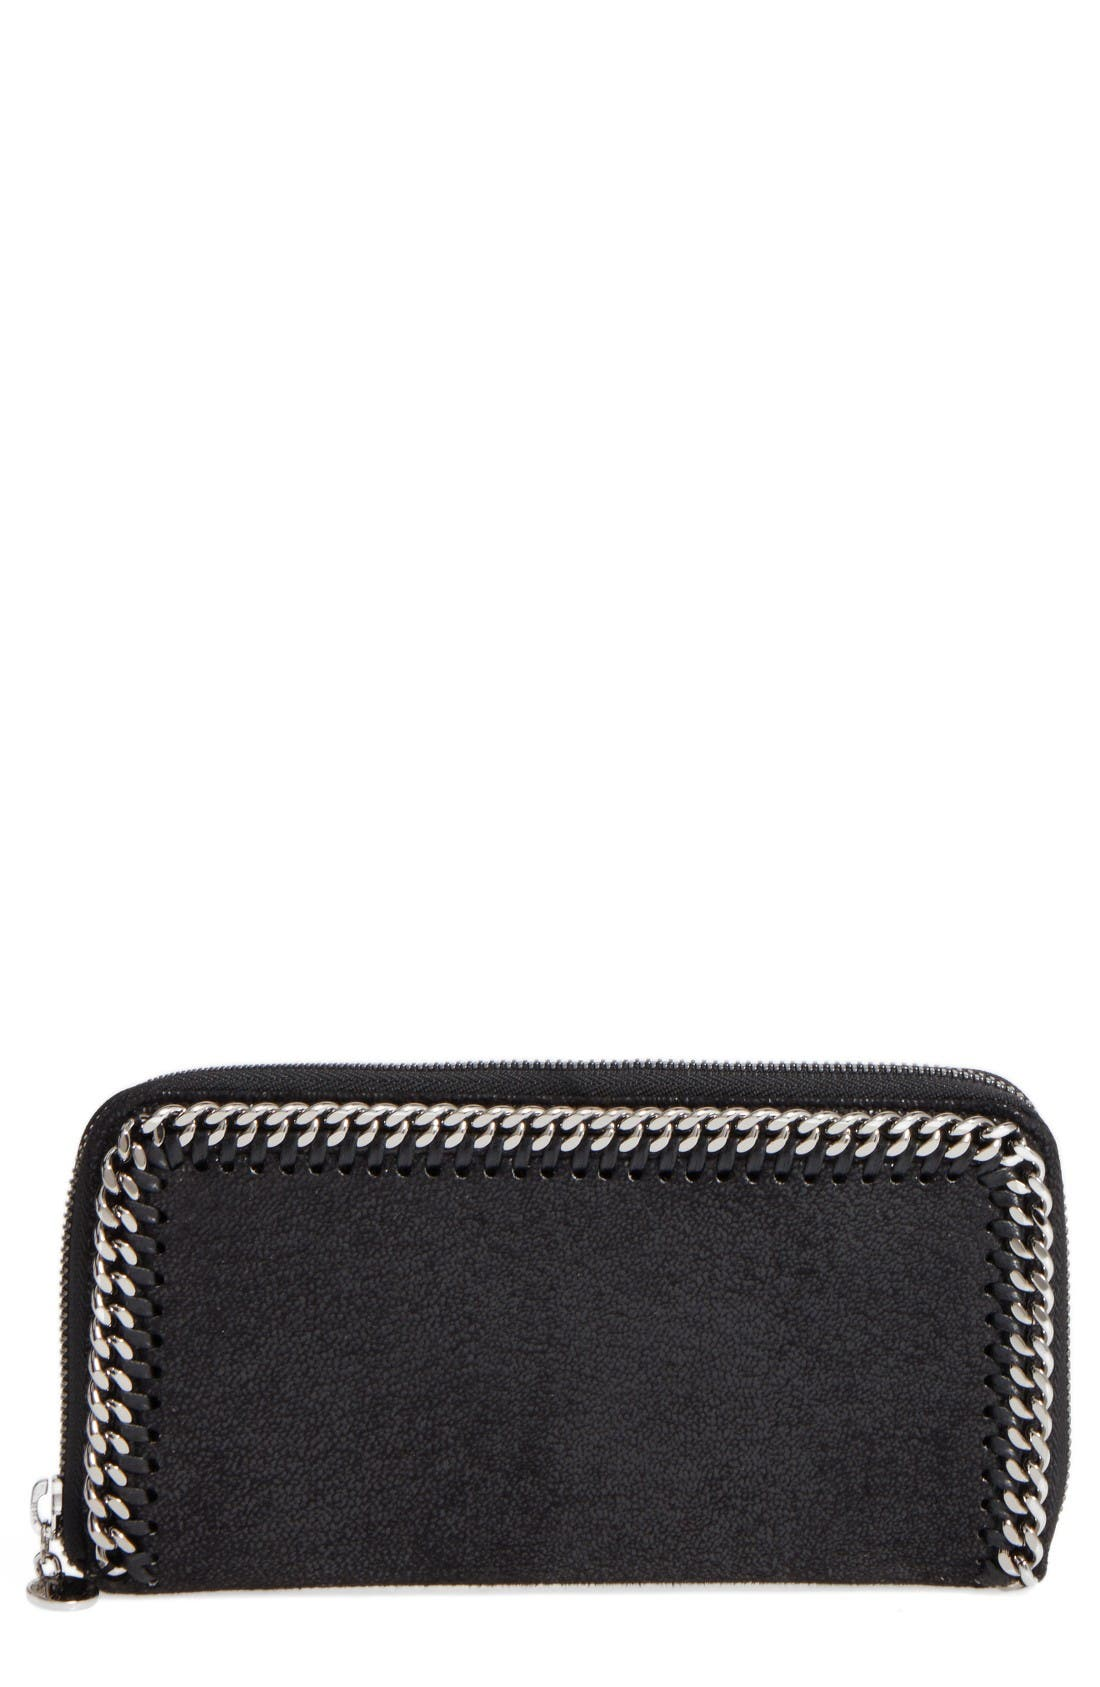 Stella McCartney Falabella Faux Leather Wallet